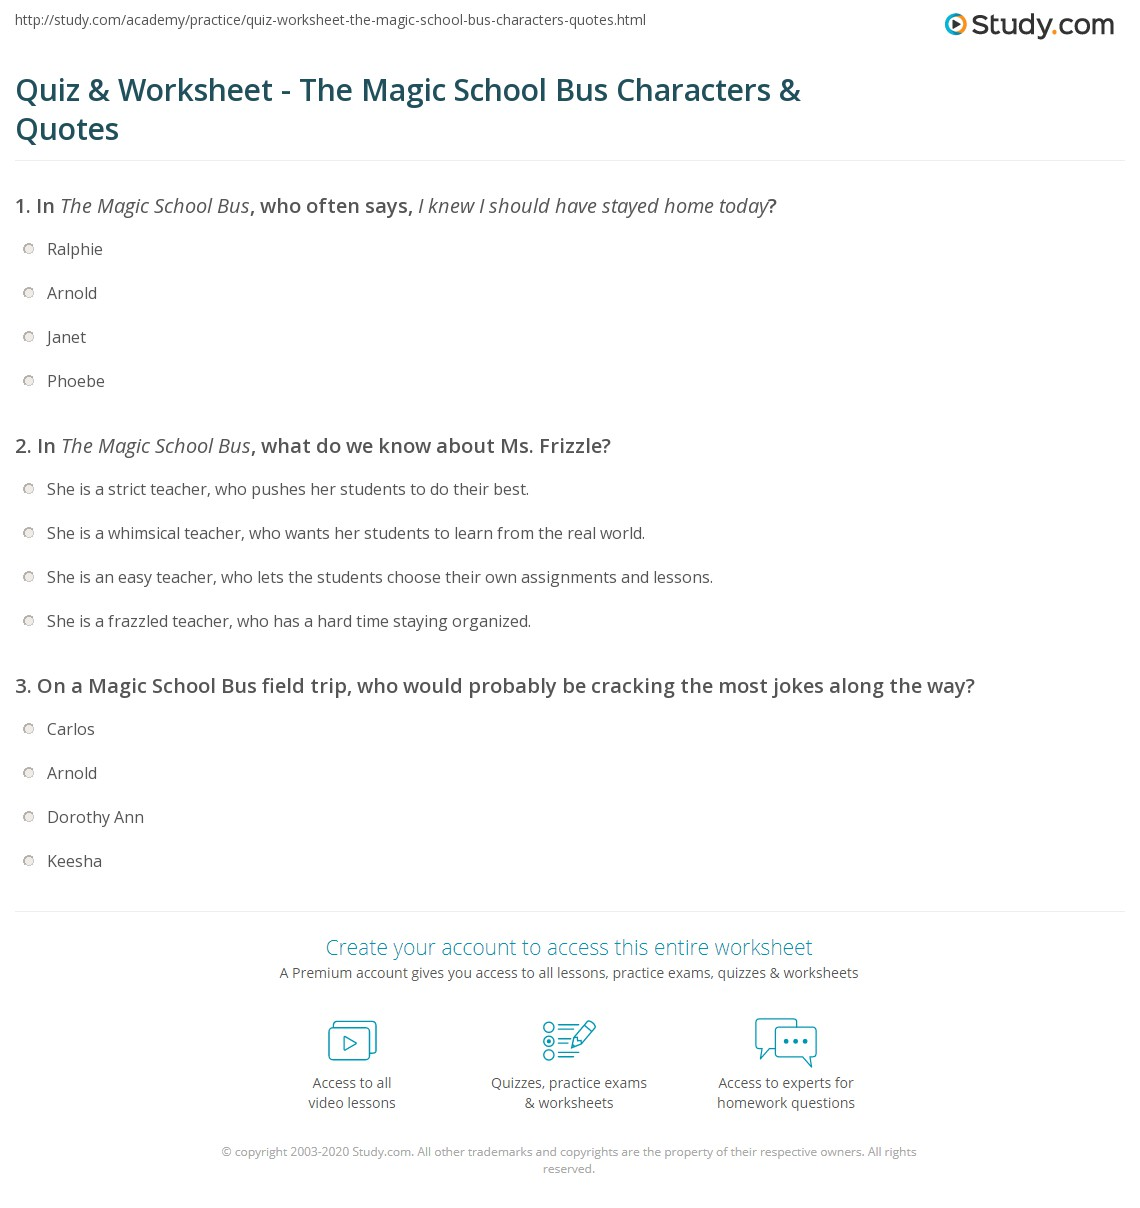 Print The Magic School Bus Characters Quotes Worksheet